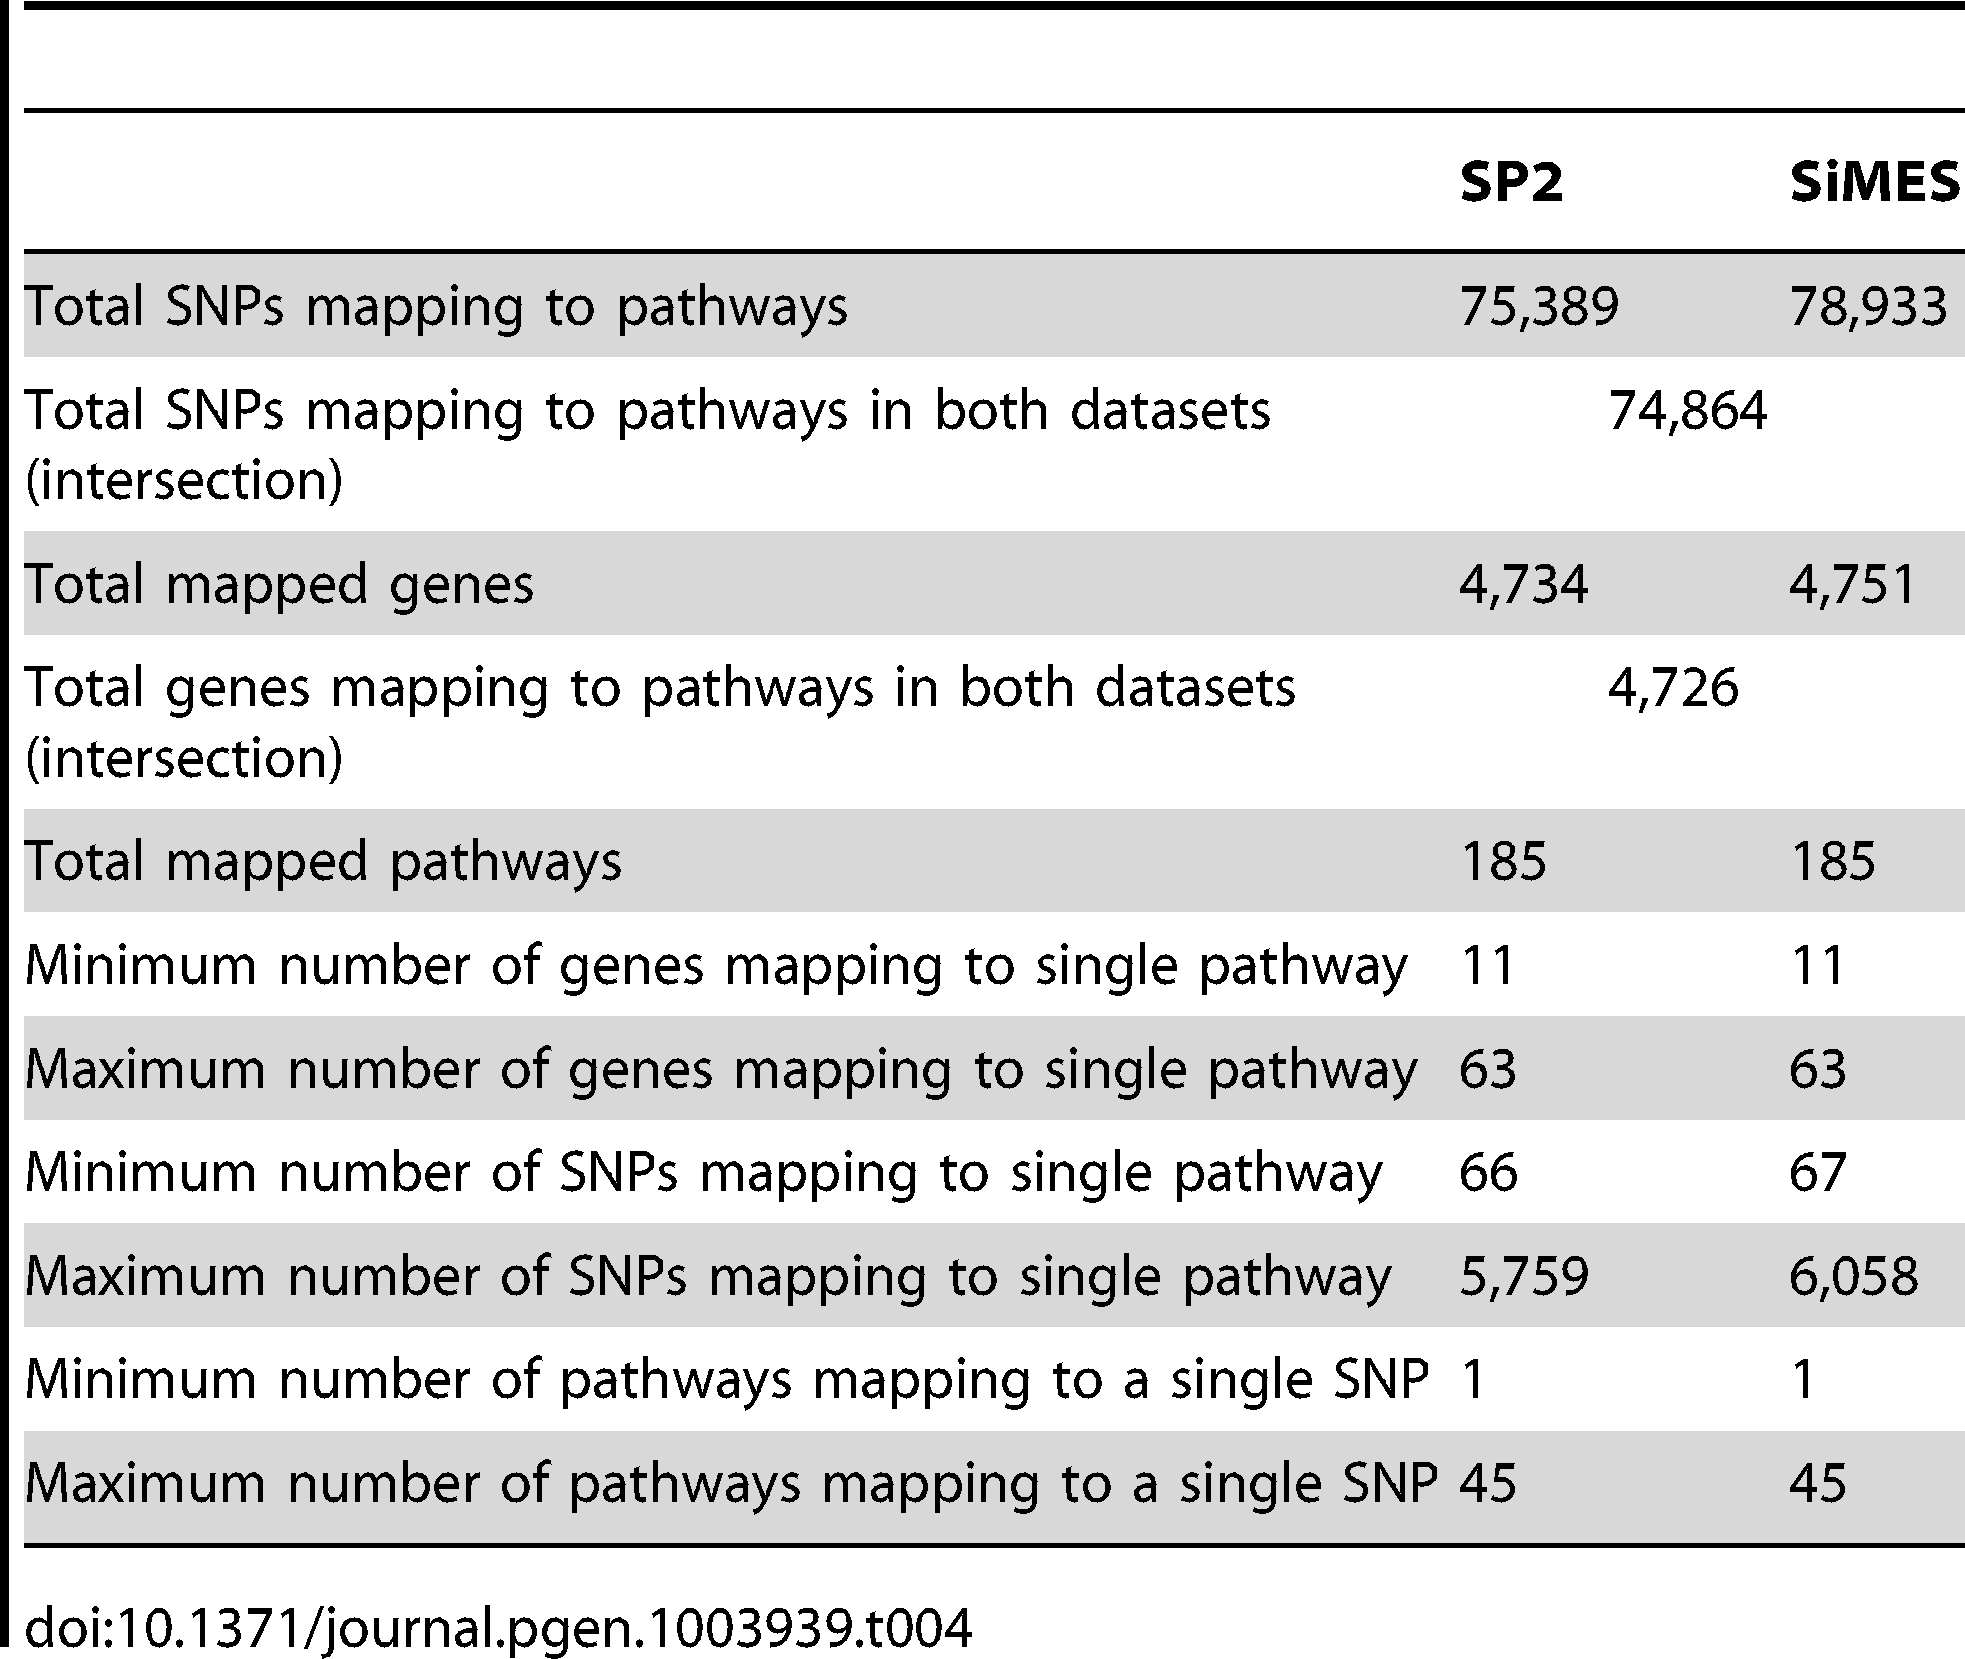 Comparison of SNP and gene to pathway mappings for the SP2 and SiMES datasets.